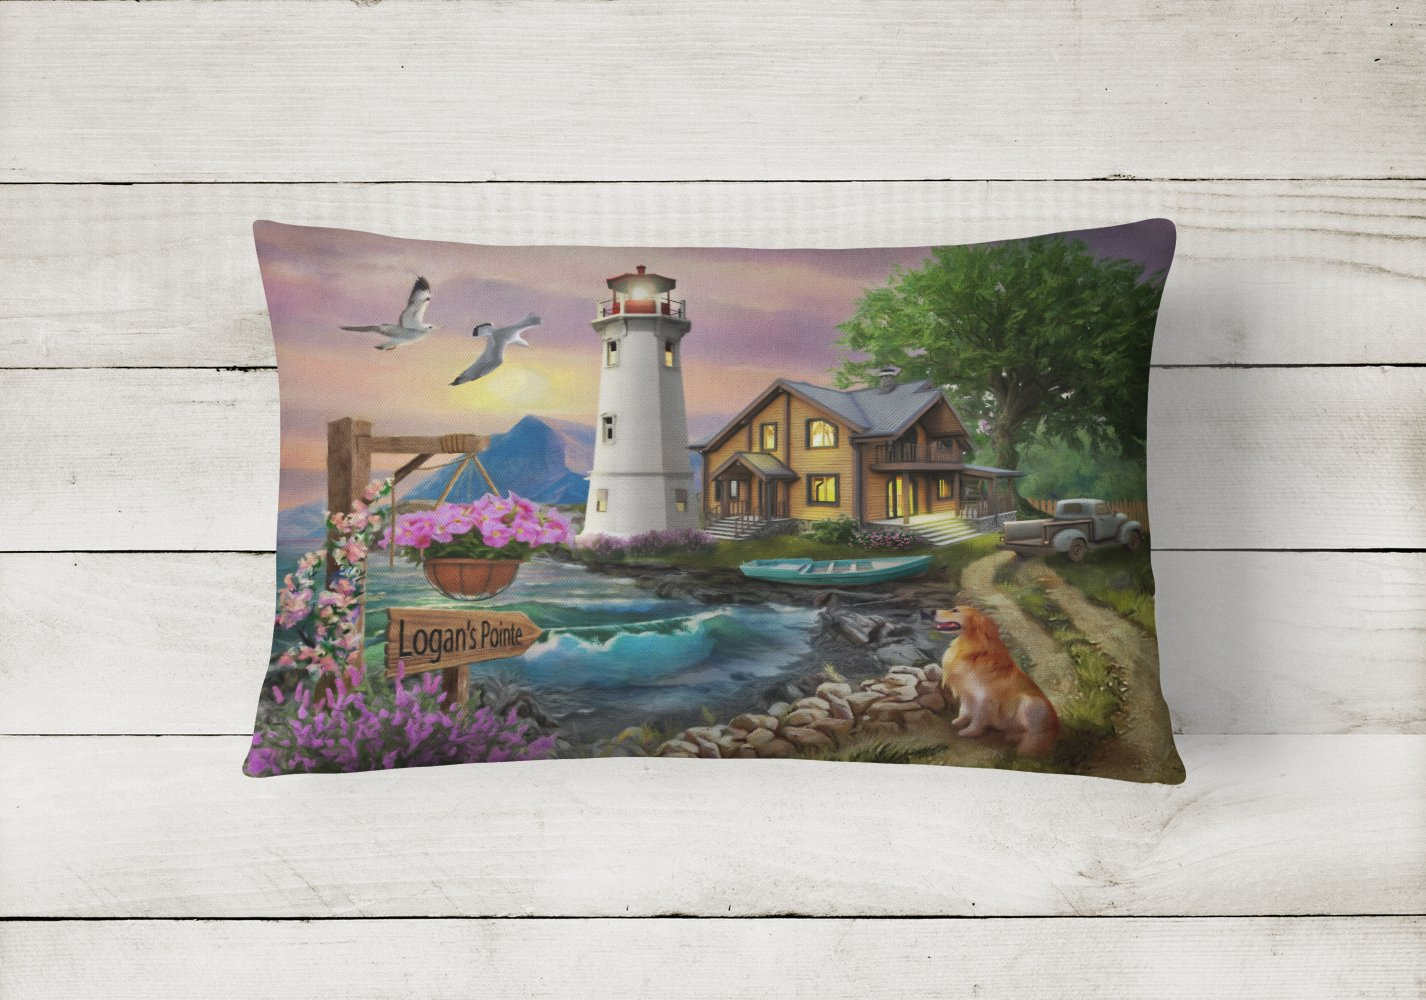 Logan's Pointe Lighthouse Golden Retriever Canvas Fabric Decorative Pillow PTW2070PW1216 by Caroline's Treasures